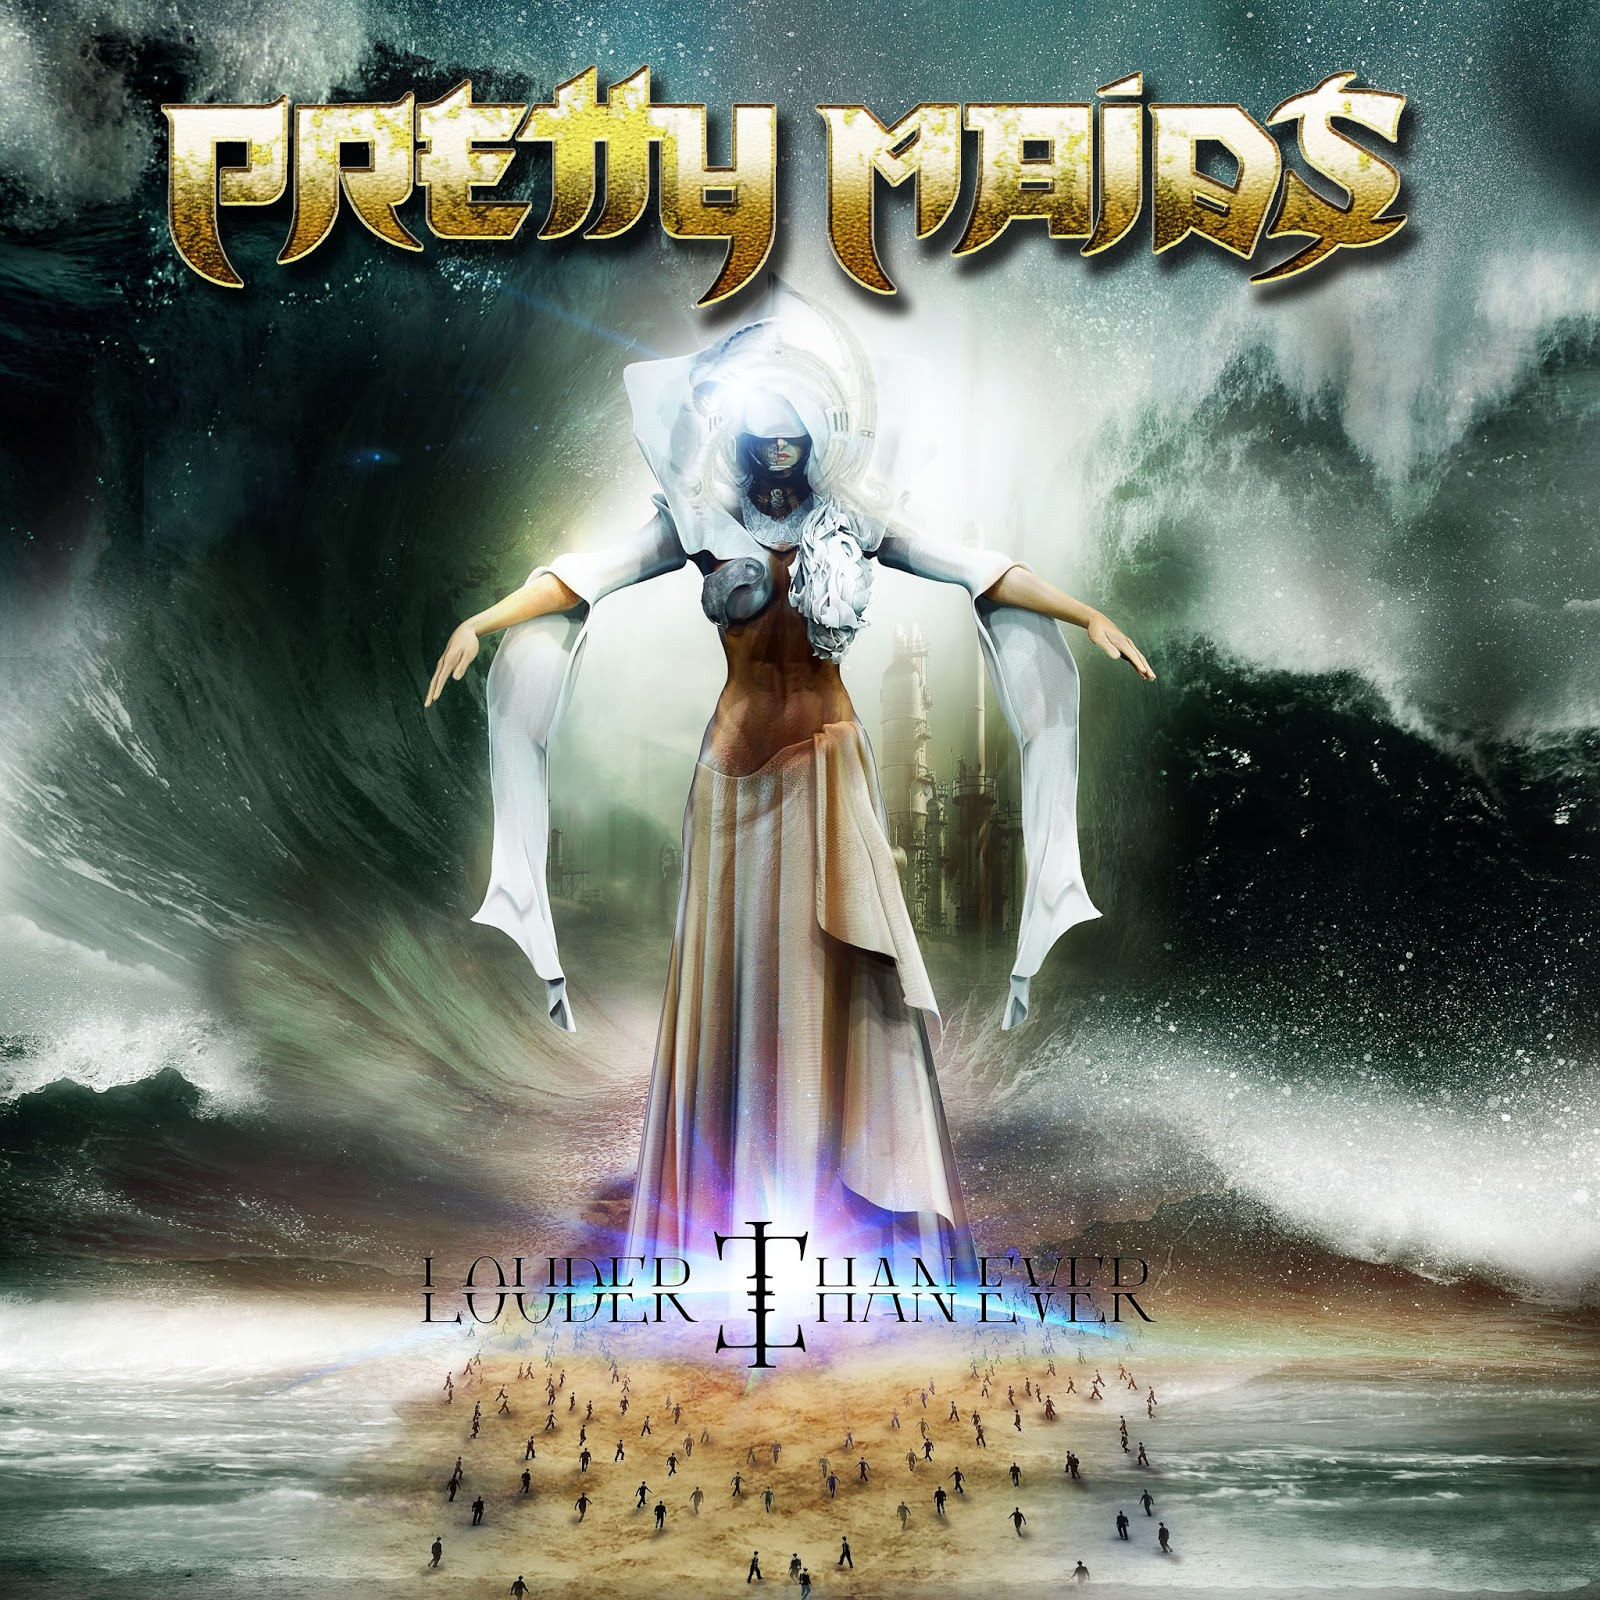 http://rock-and-metal-4-you.blogspot.de/2014/03/cd-review-pretty-maids-louder-than-ever.html